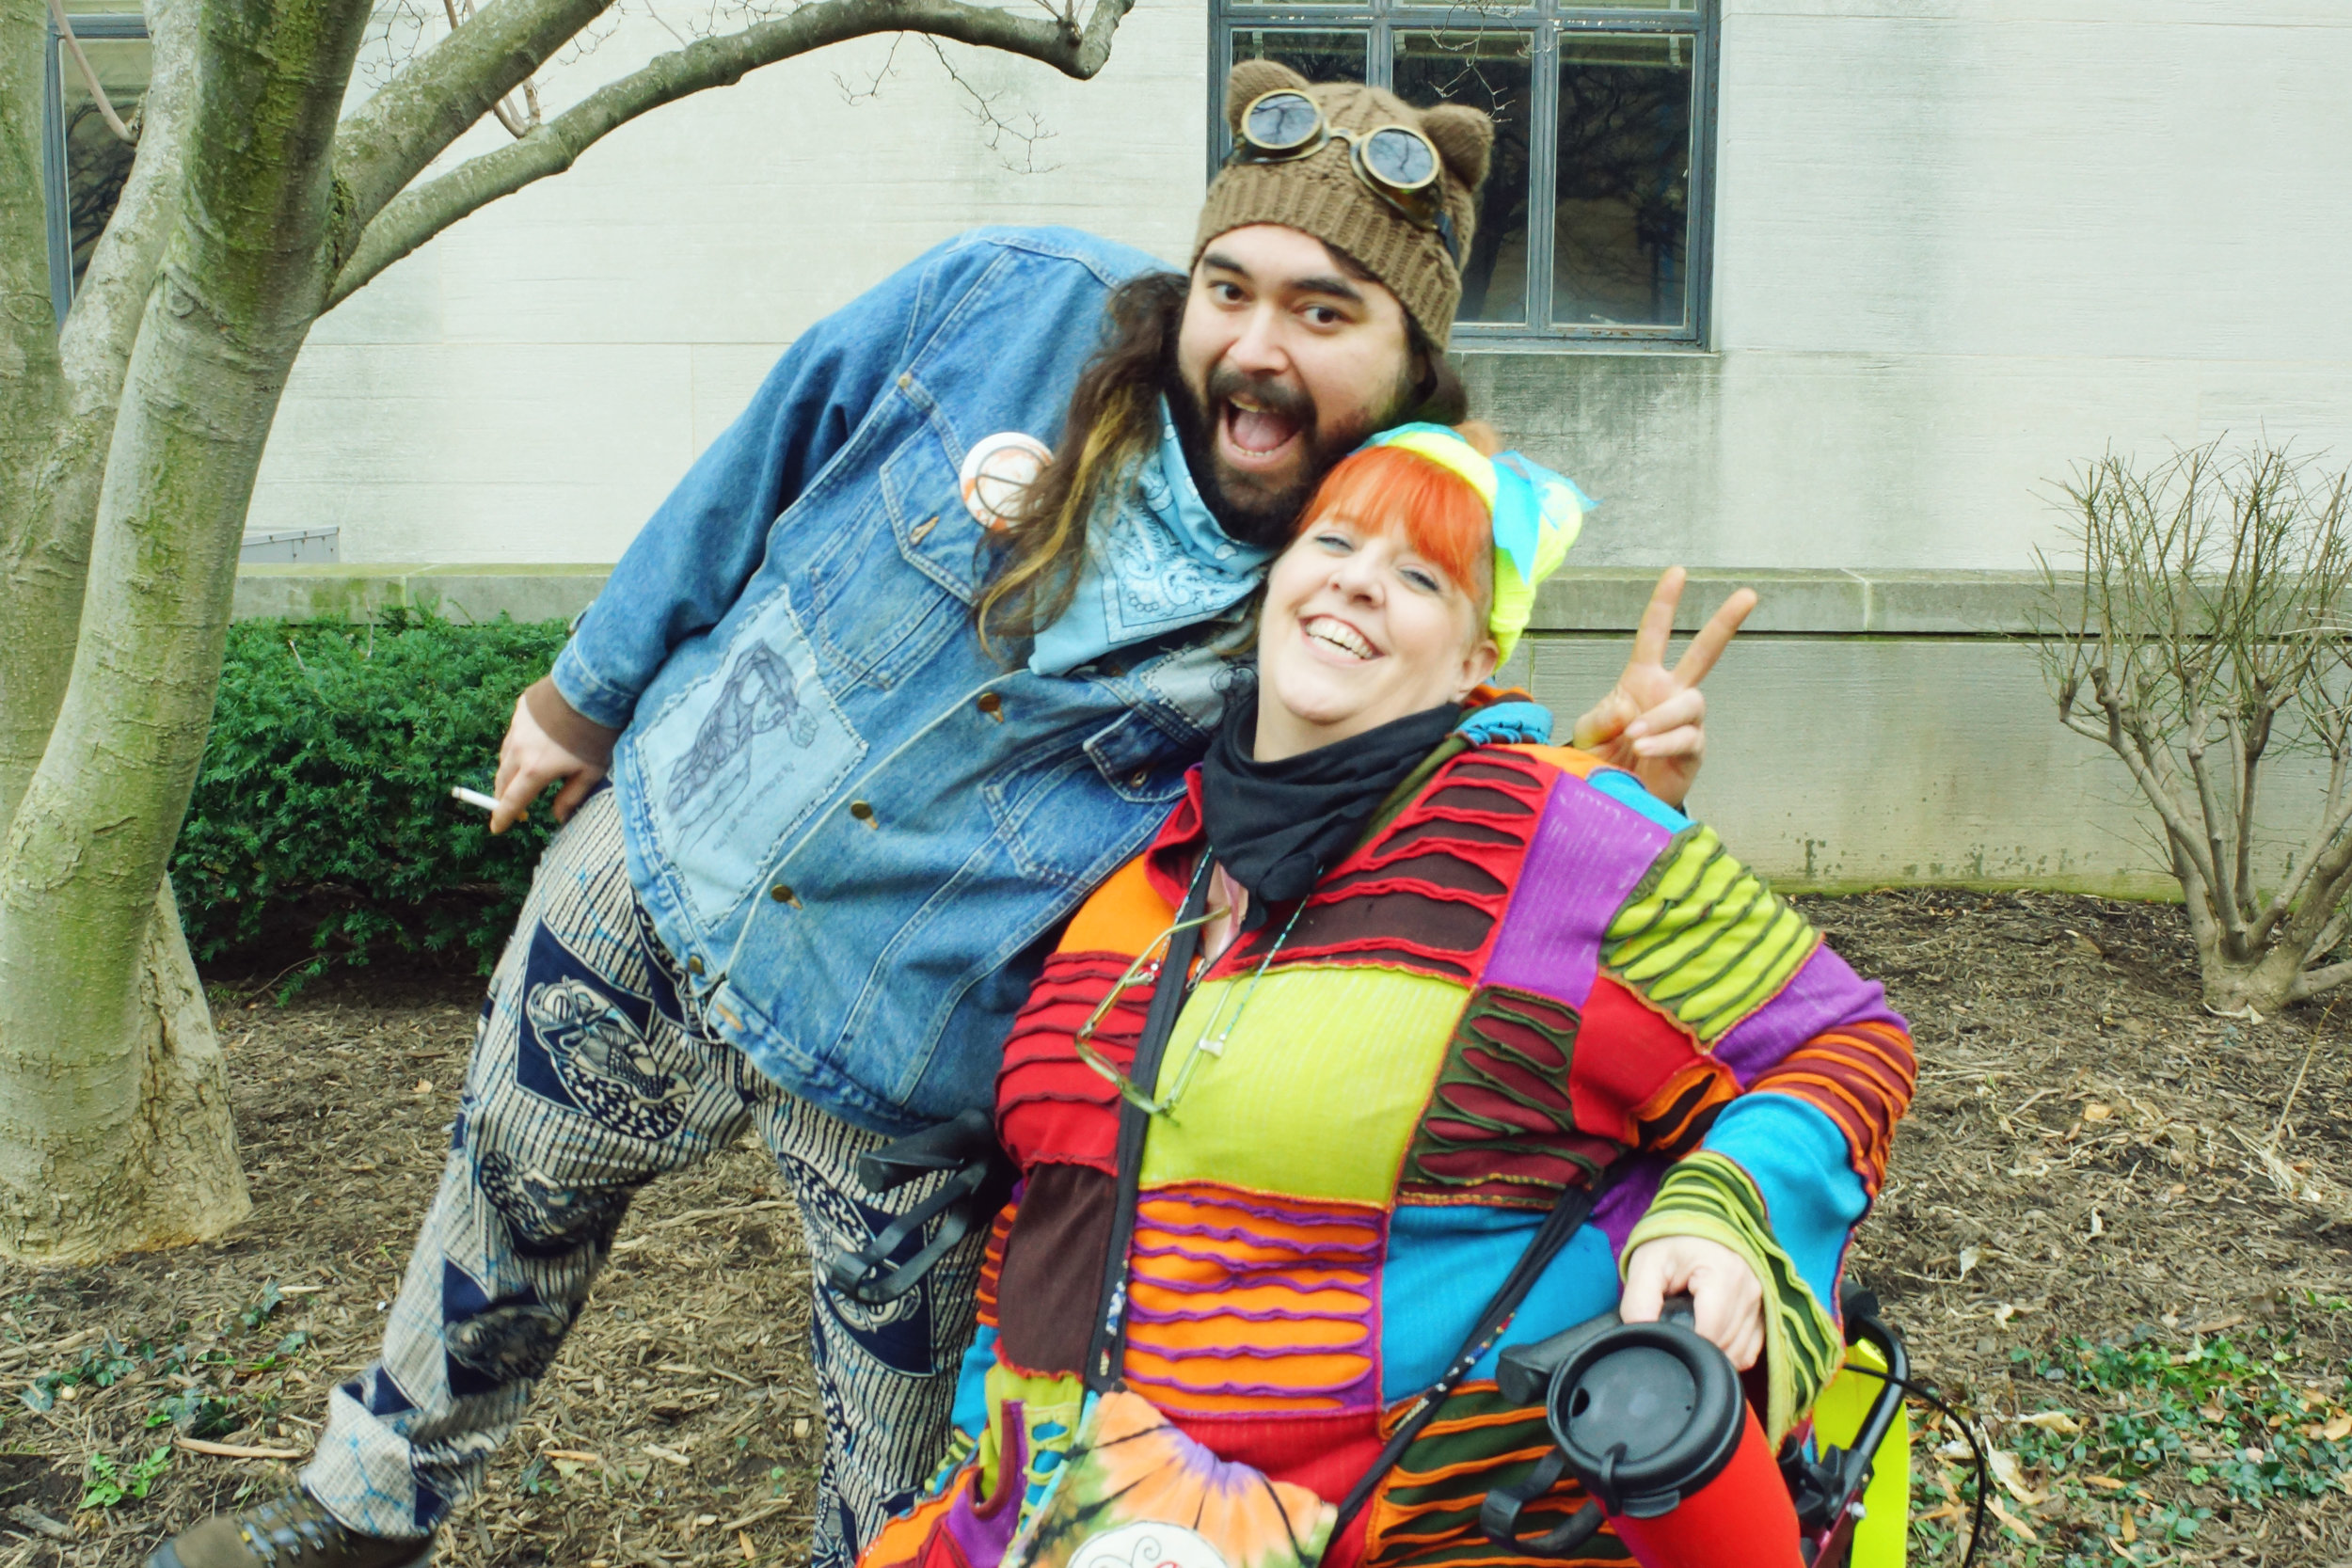 [Image description: A bearded, long-haired Latino man, Rico,smiles and flashes a peace sign over the shoulder of a beaming red-haired woman, Lainie.She wears a brightly colored patchwork coat and holds a red thermos.]